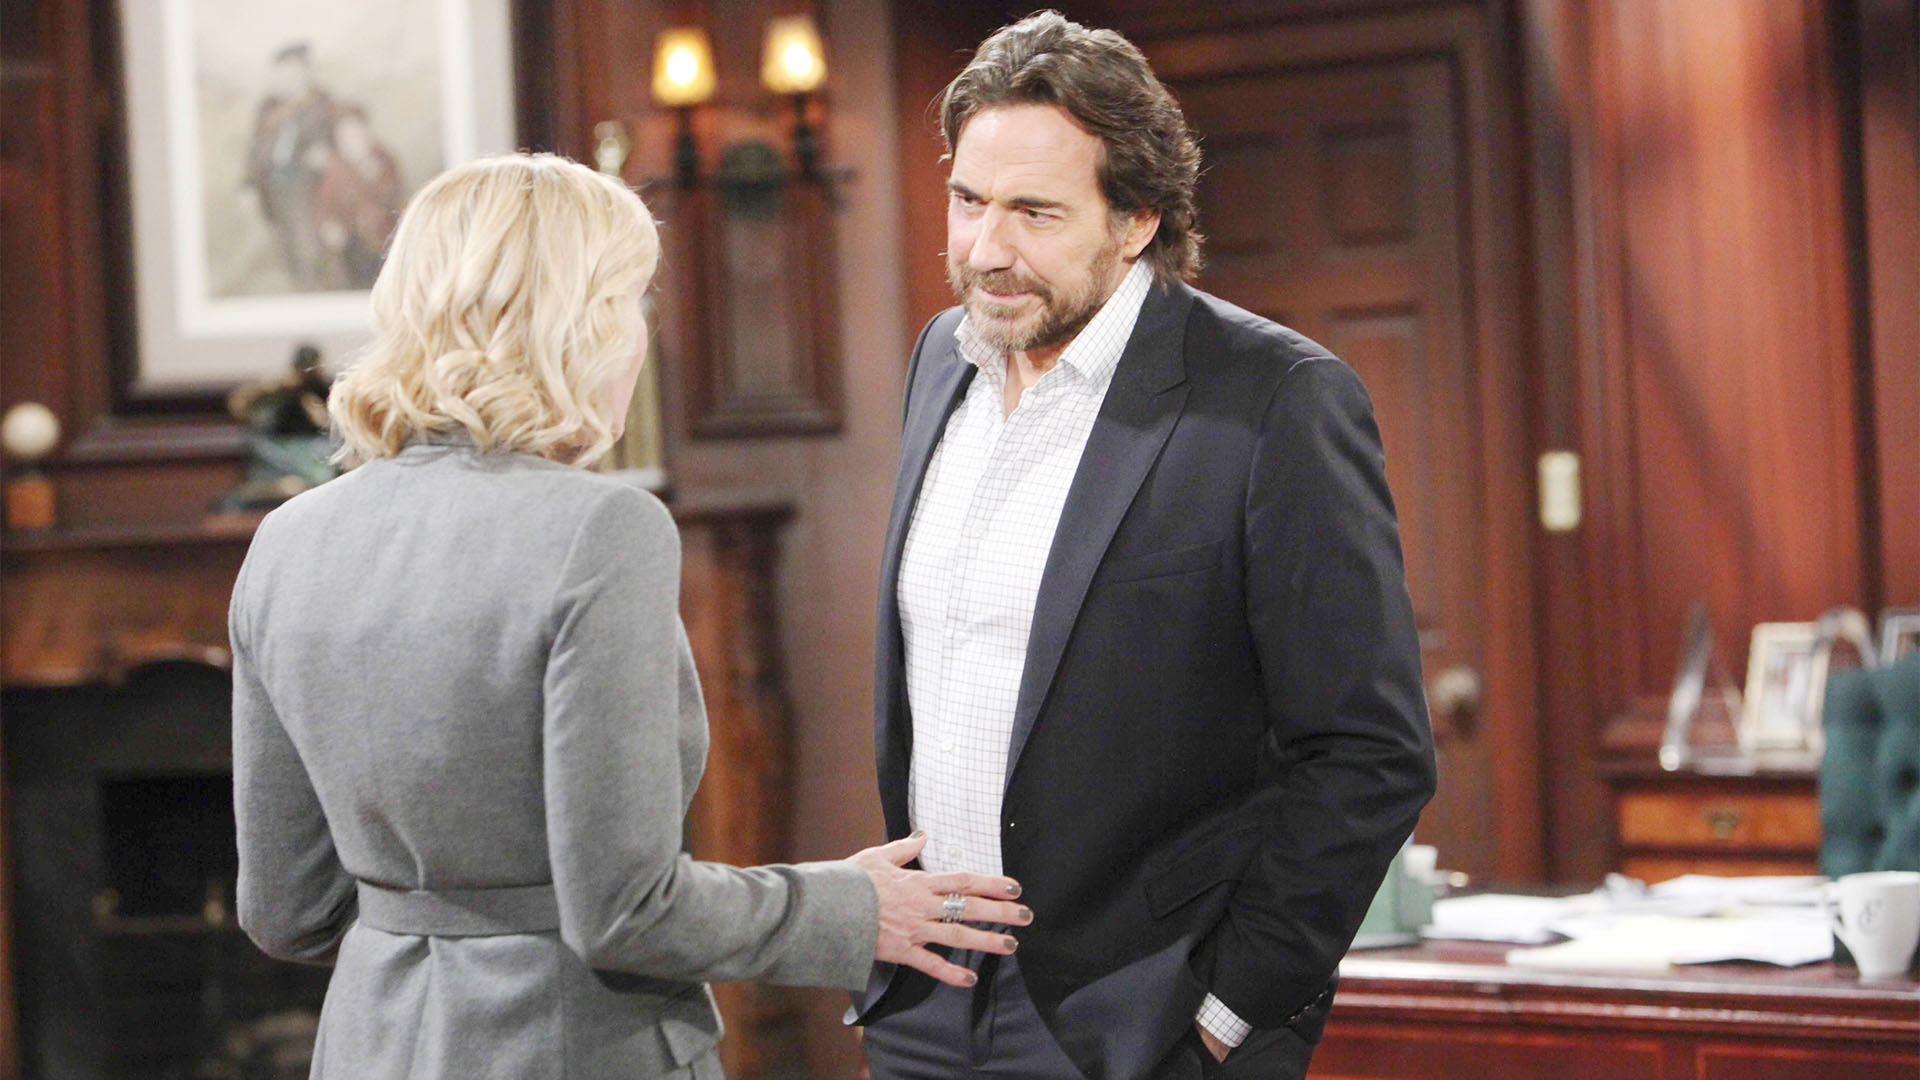 Ridge finds it difficult to hide his rage towards Bill from Brooke.